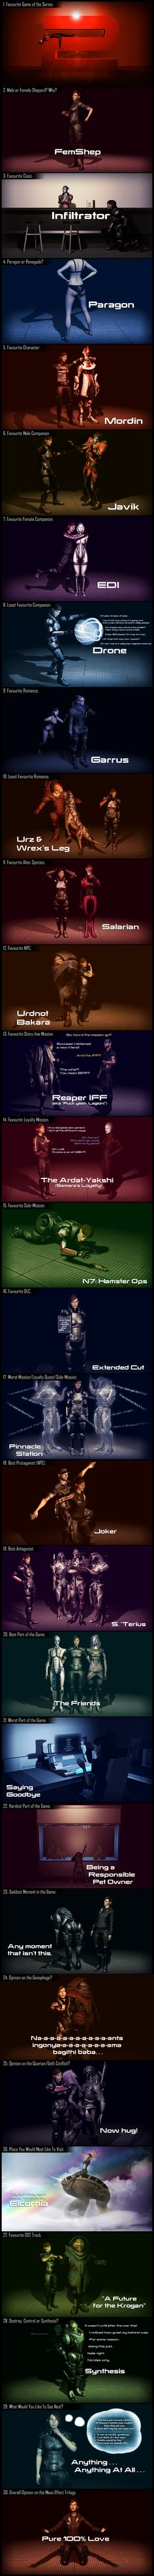 30 Day Mass Effect Challenge by ImperatorAlicia on DeviantArt